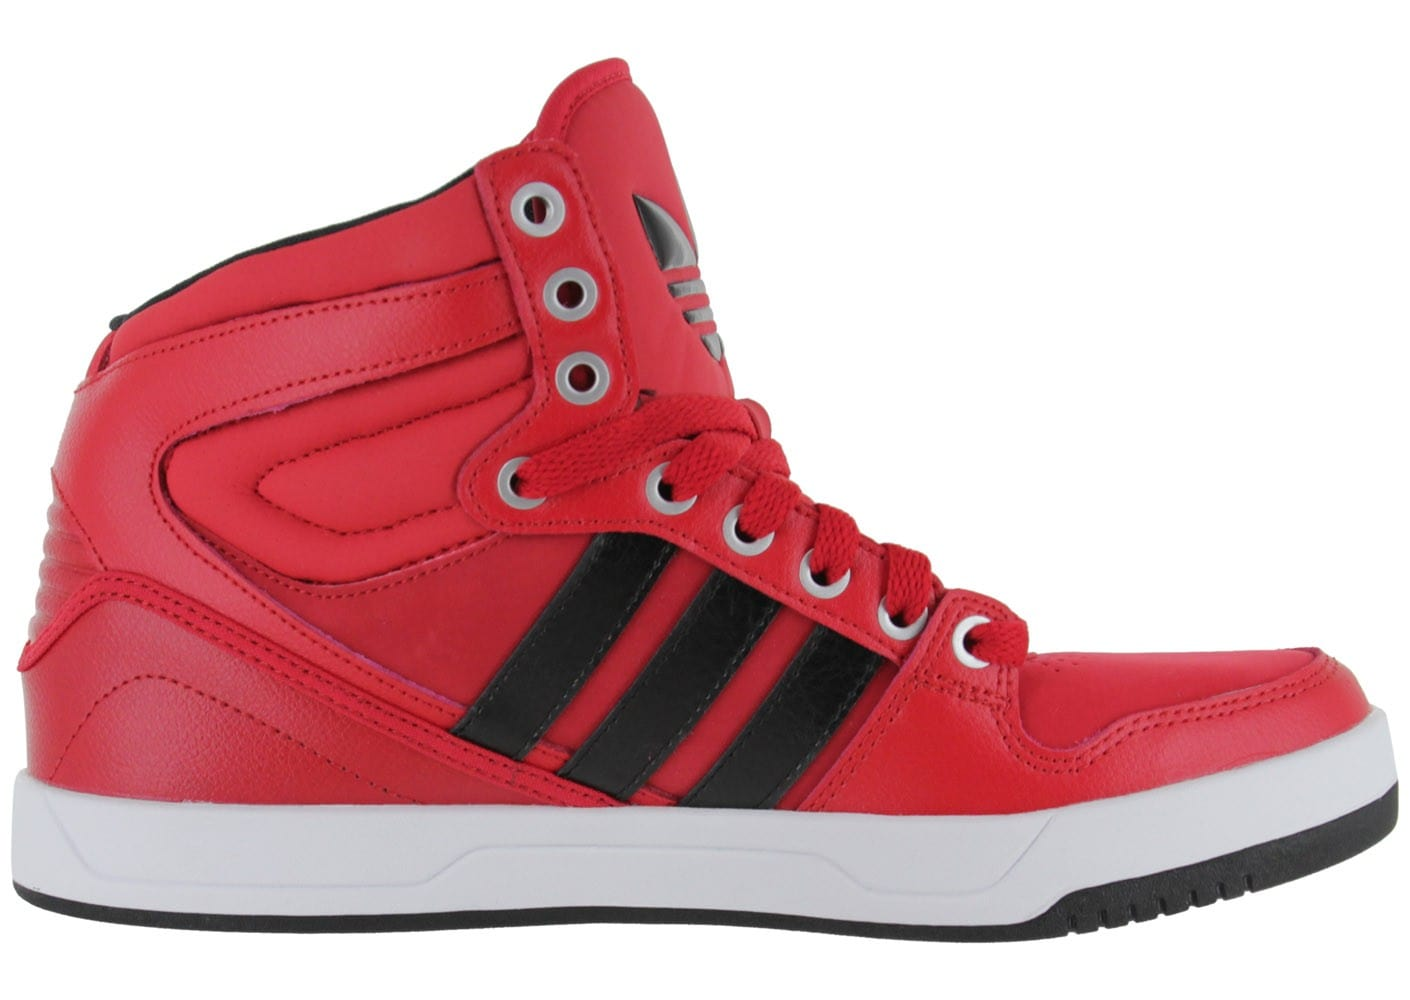 adidas court attitude rouge chaussures homme chausport. Black Bedroom Furniture Sets. Home Design Ideas